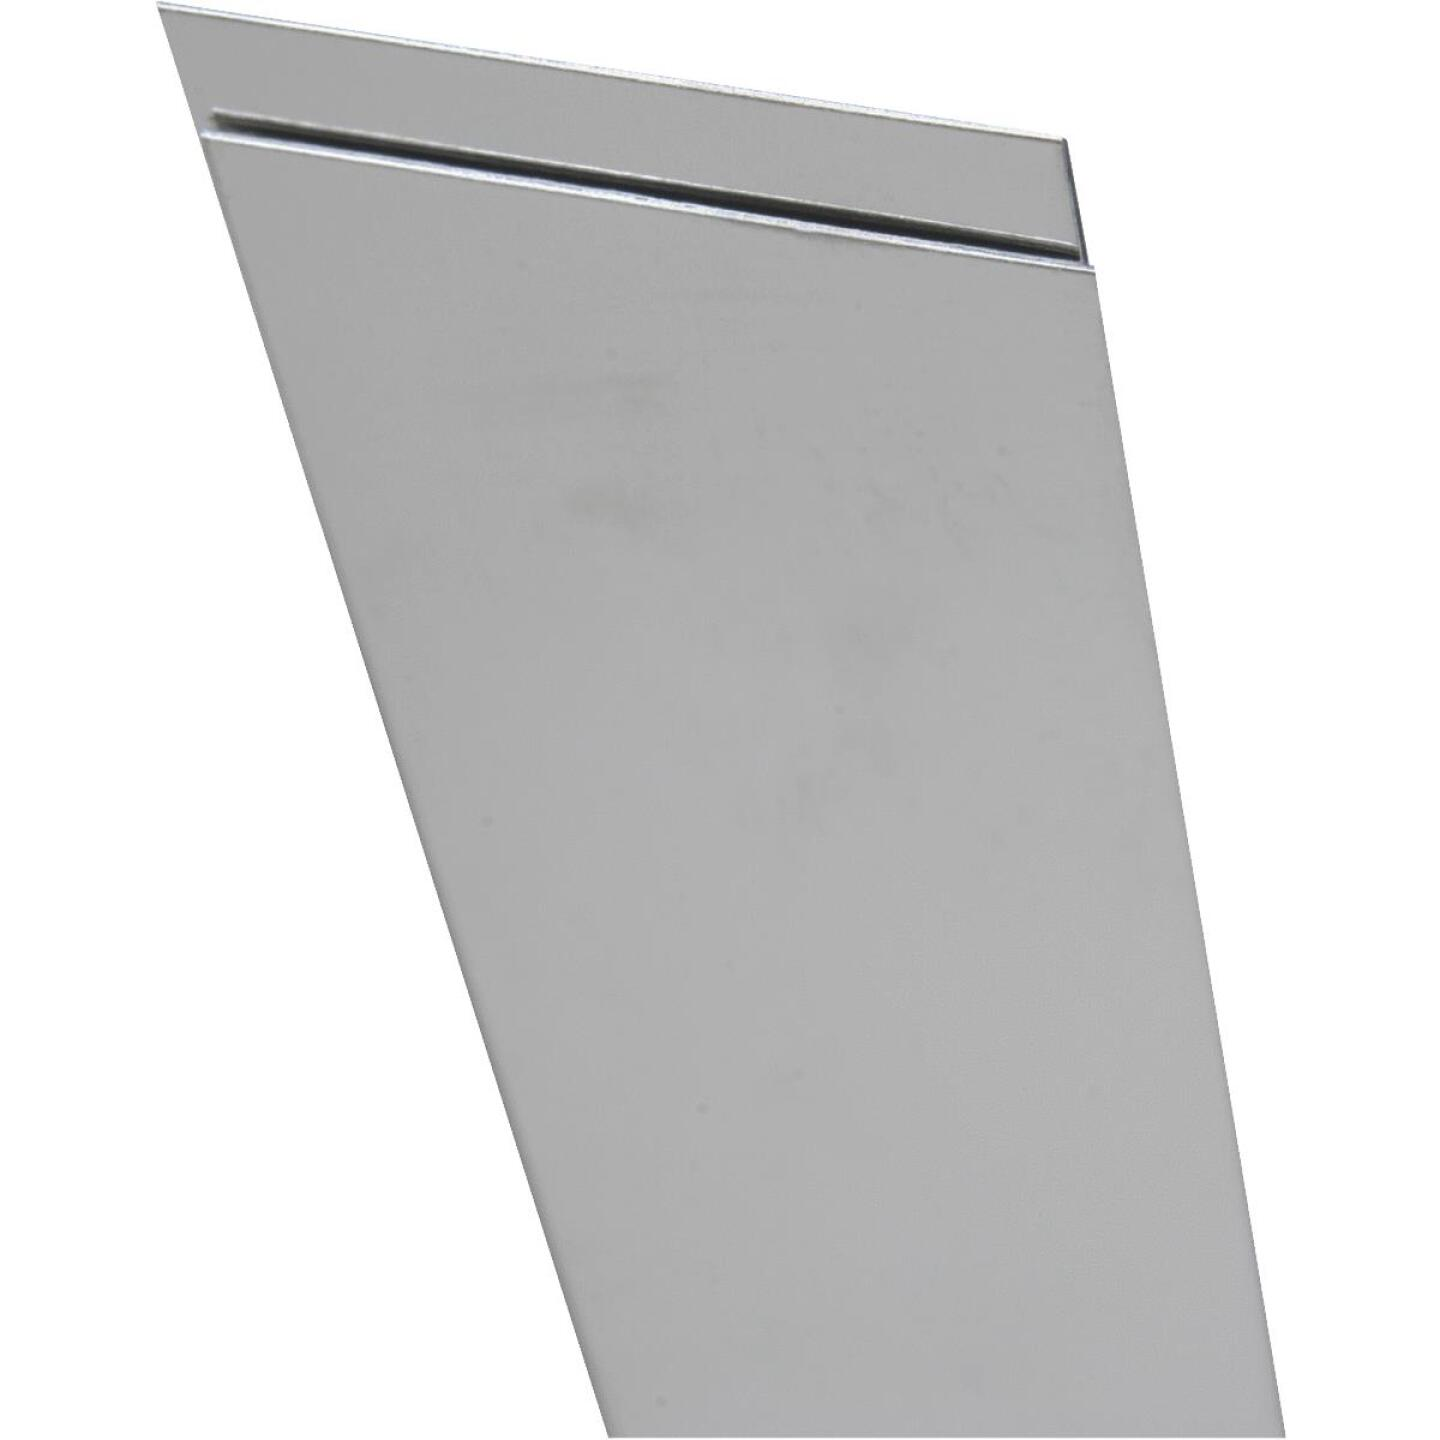 K&S 6 In. x 12 In. x .012 In. Stainless Steel Sheet Stock Image 1